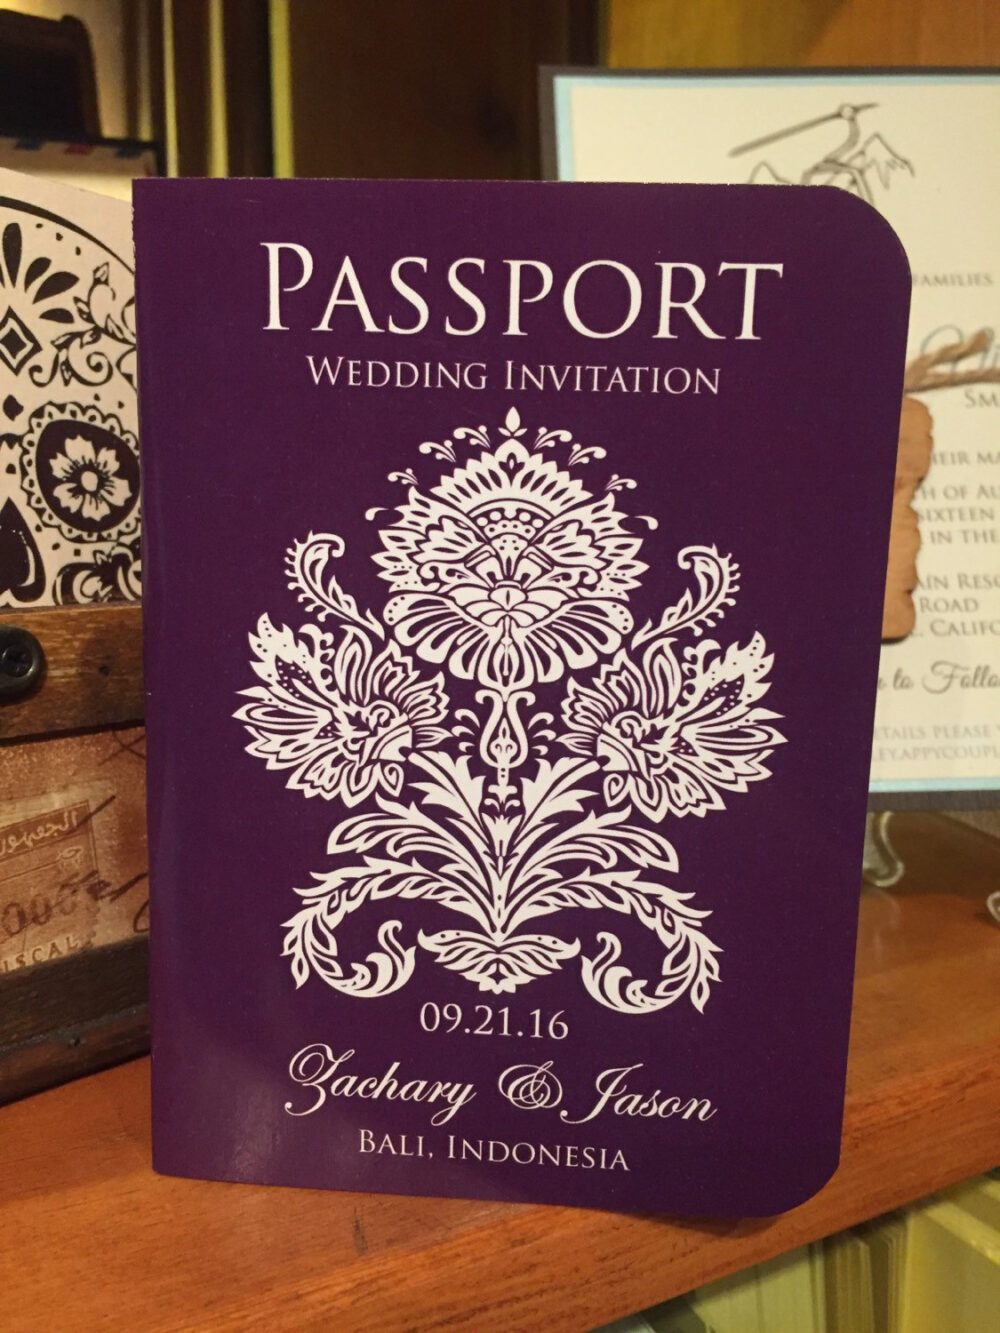 Bali Wedding Invitation, Passport Invitation